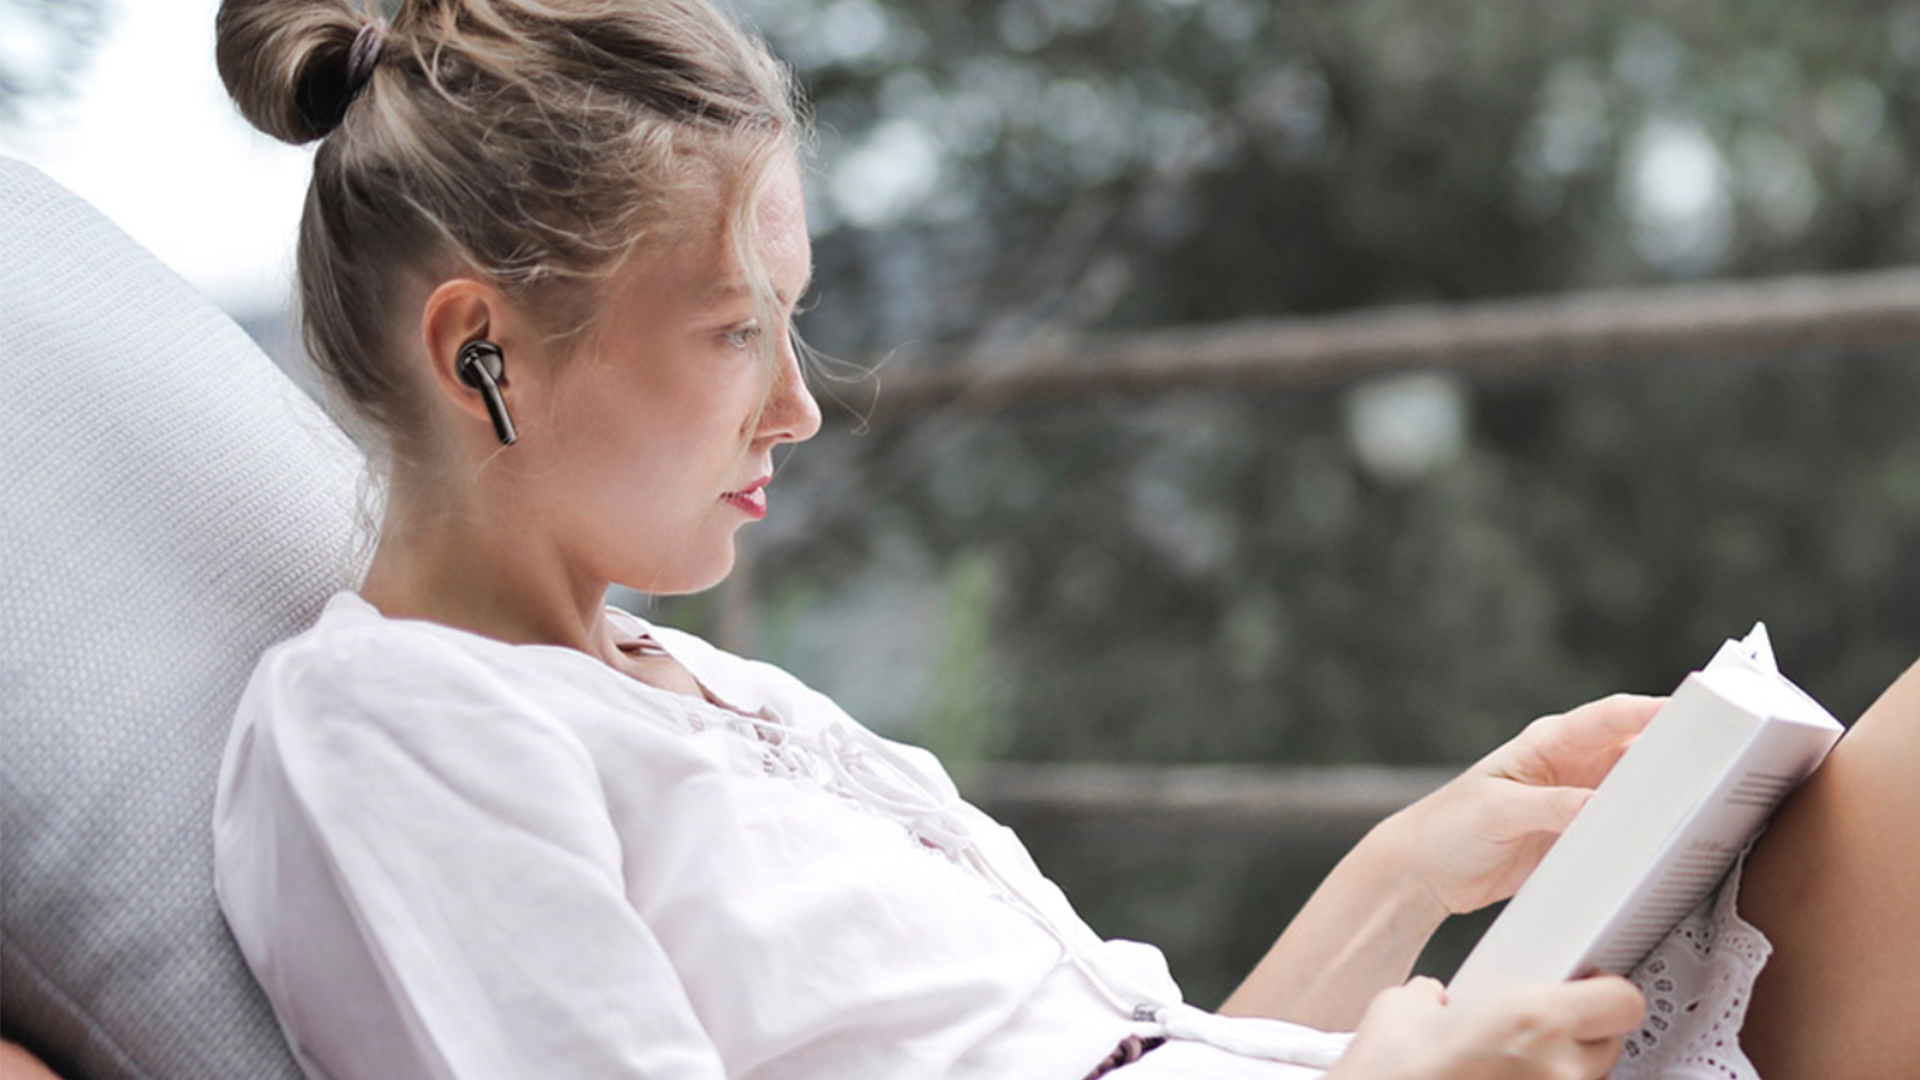 Limited time offer: ONE 5.0 Bluetooth wireless earbuds offer noise cancellation and hands-free calls